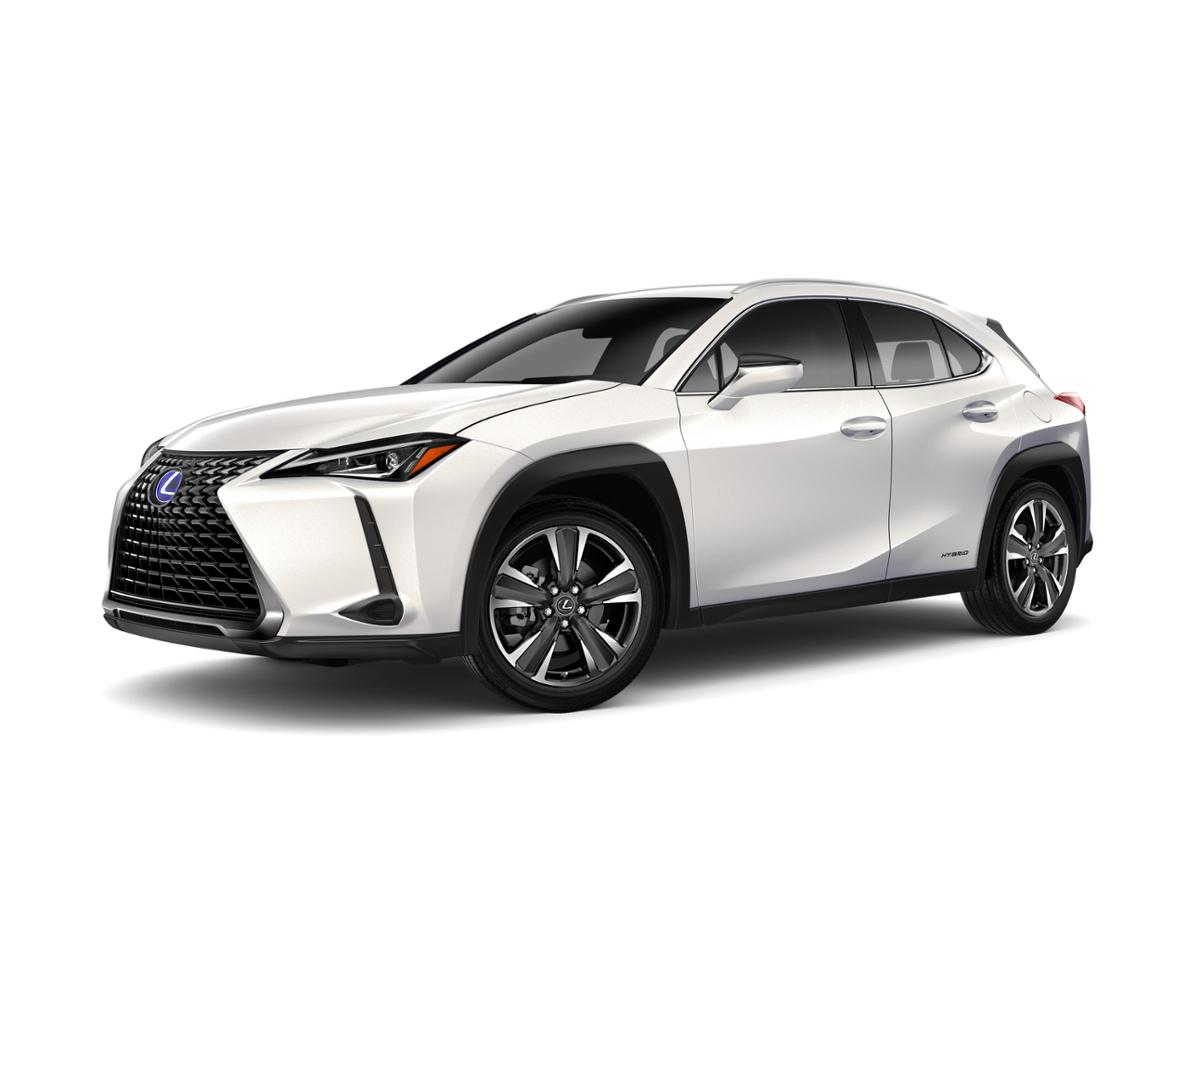 New Eminent White Pearl 2019 Lexus UX 250h In West Palm